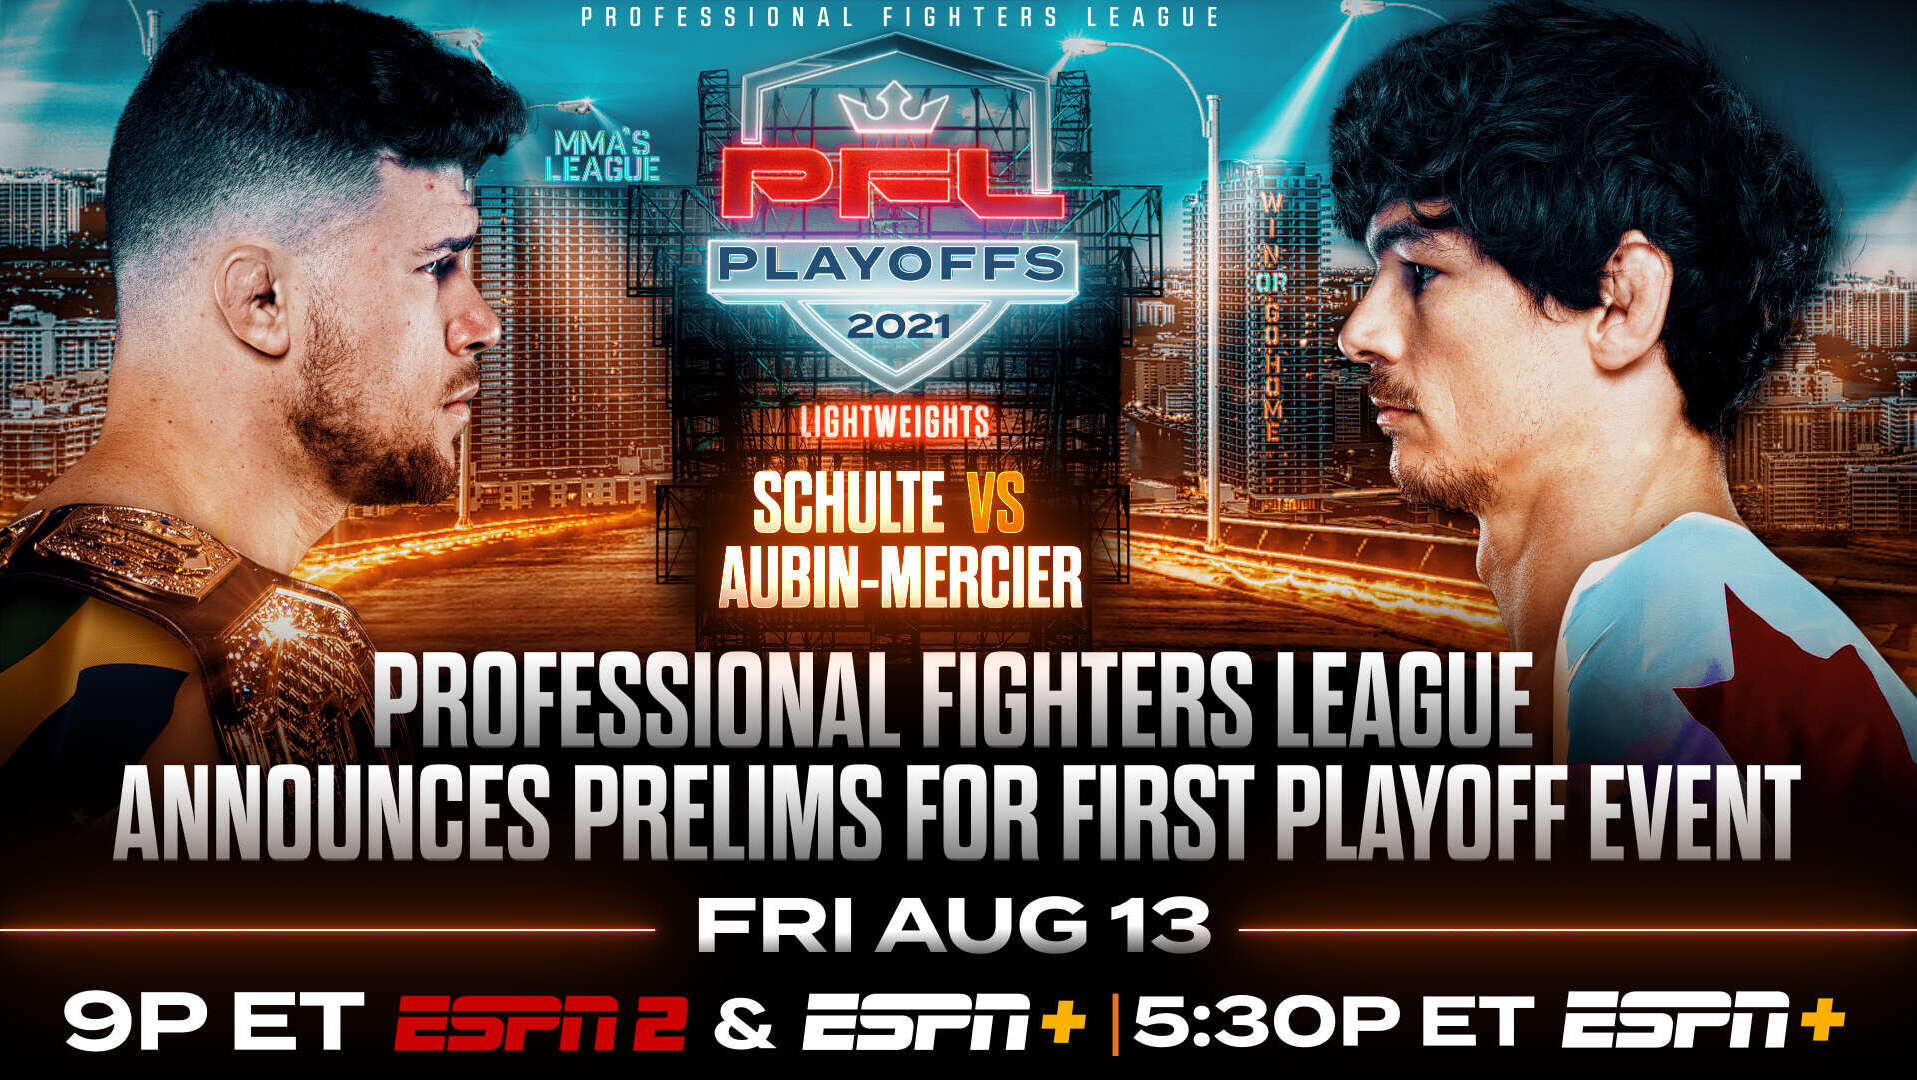 PROFESSIONAL FIGHTERS LEAGUE ANNOUNCES FULL CARD FOR FIRST PLAYOFF EVENT ON FRIDAY, AUGUST 13